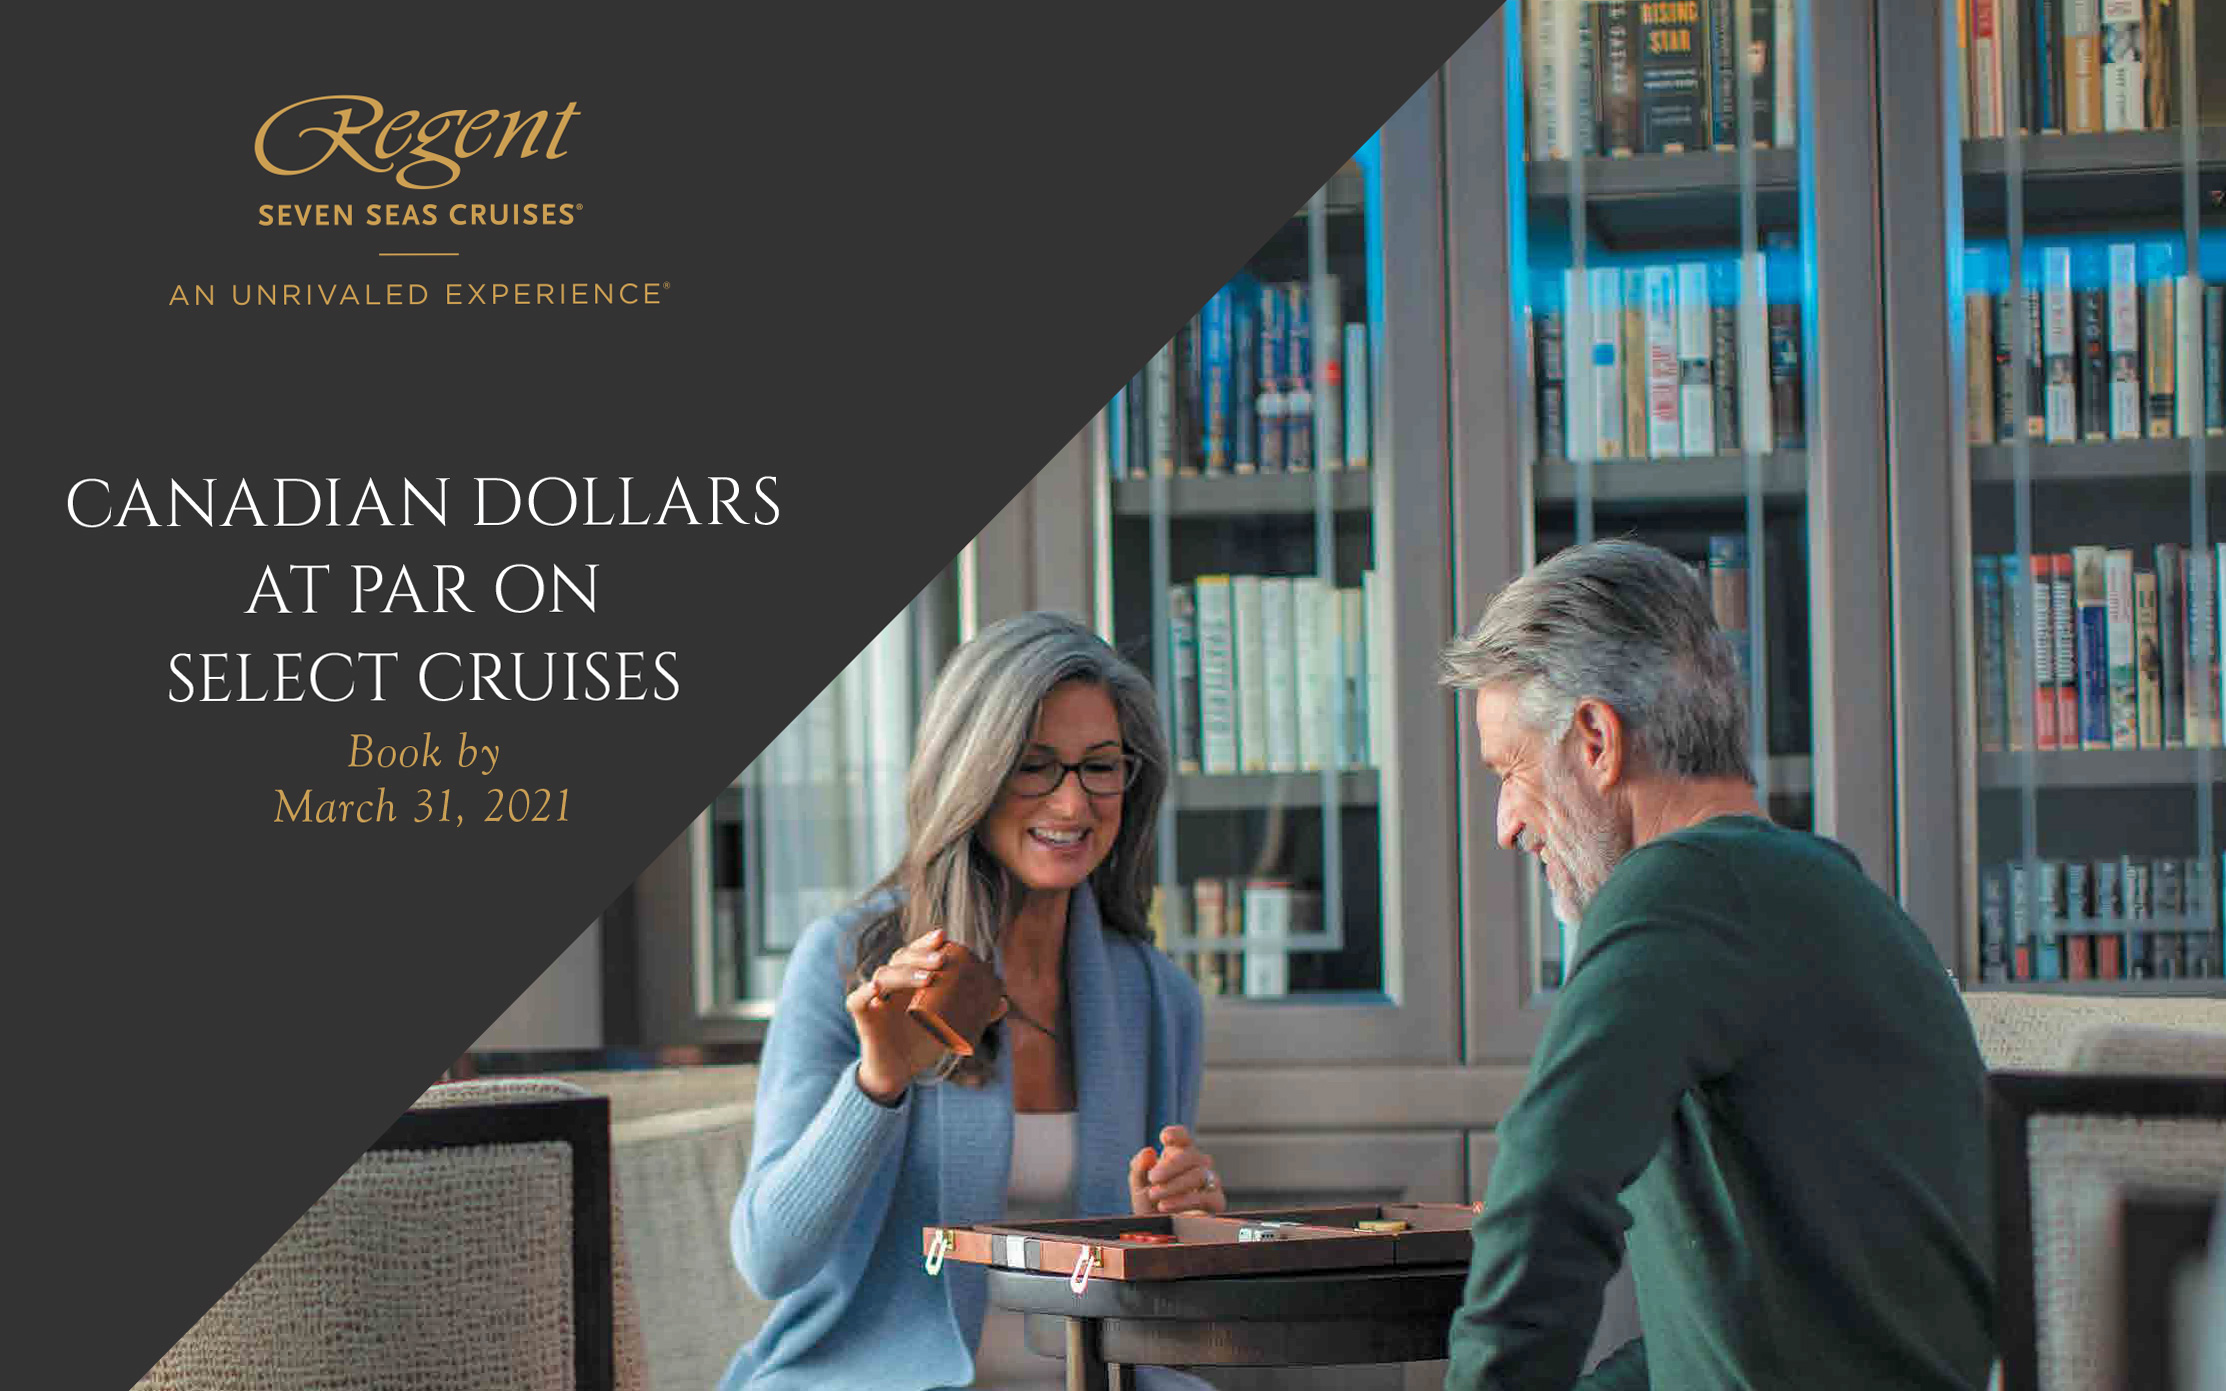 Travel with Regent - CANADIAN DOLLARS AT PAR ON SELECT CRUISES